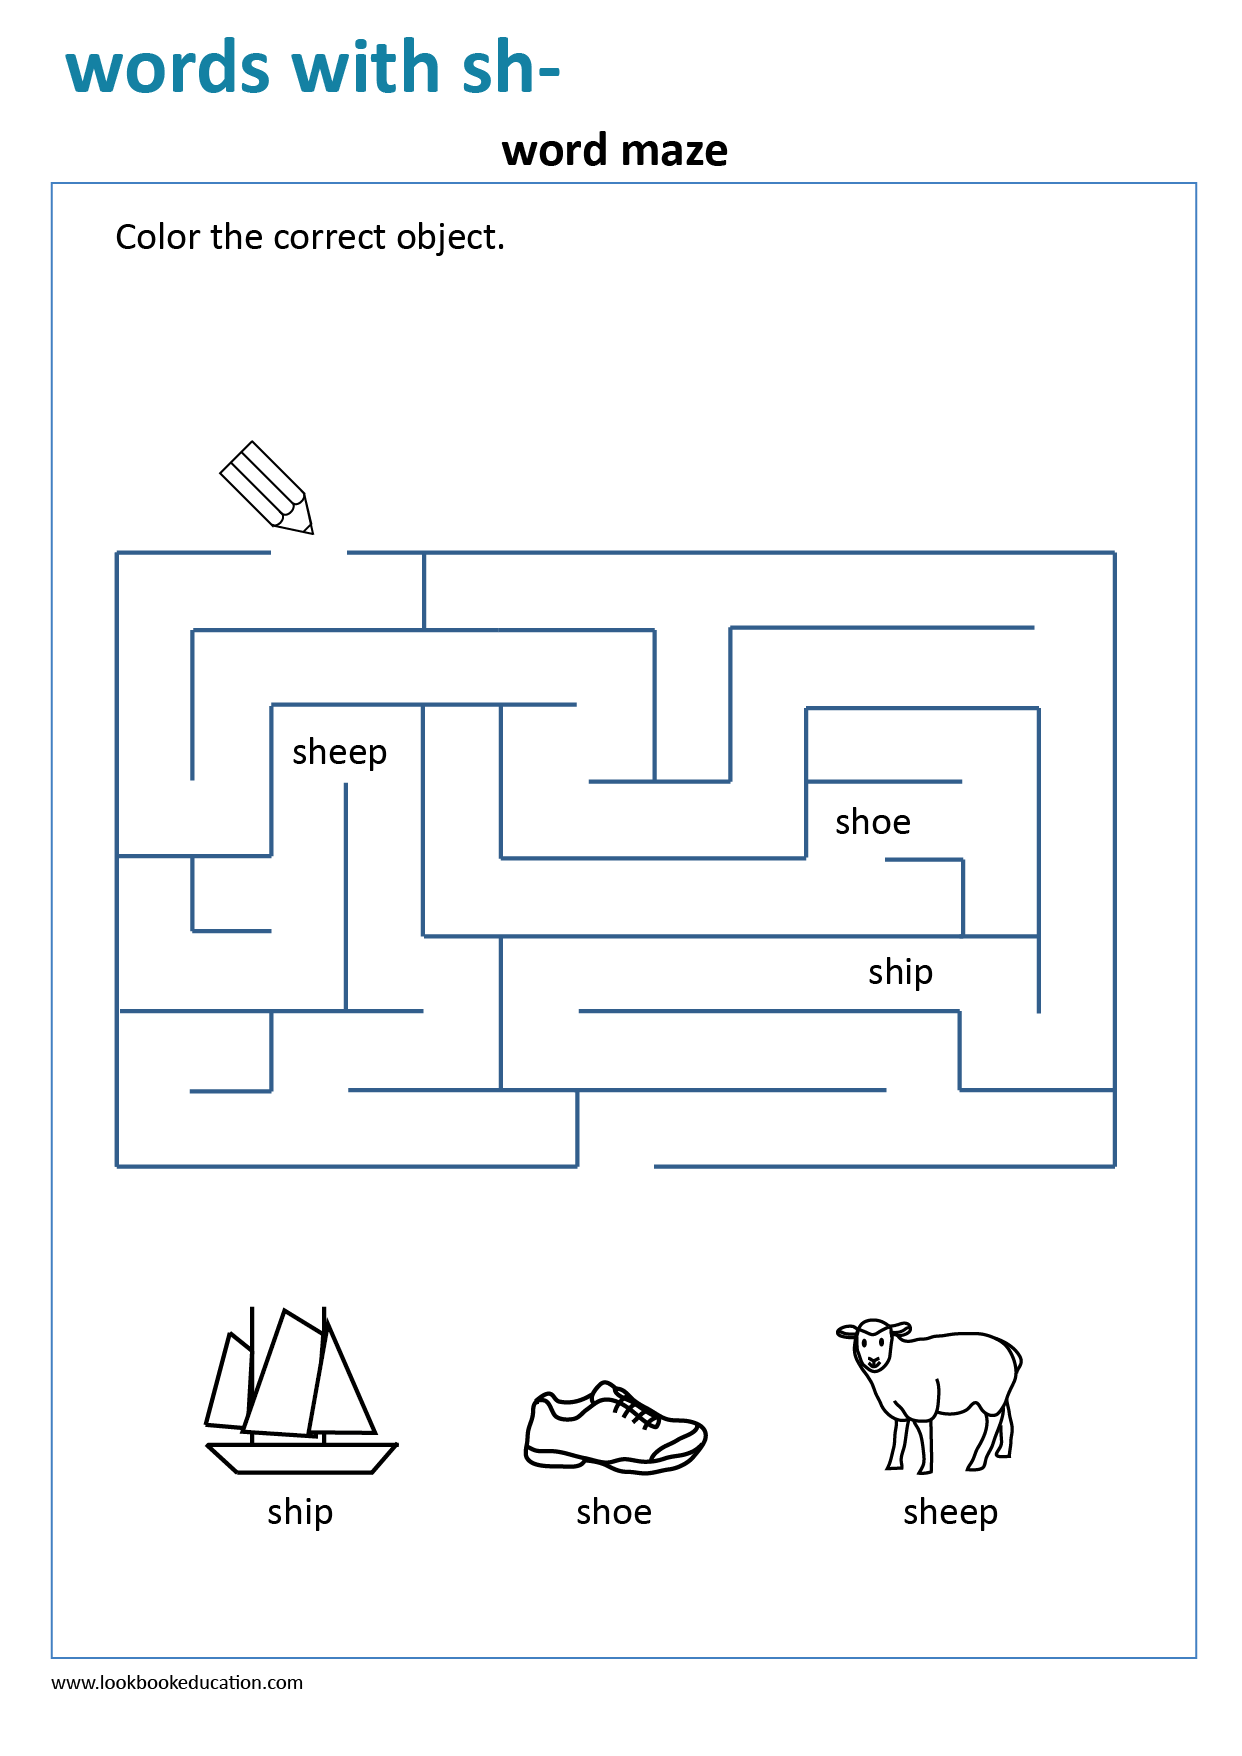 Worksheet Maze Words With Sh